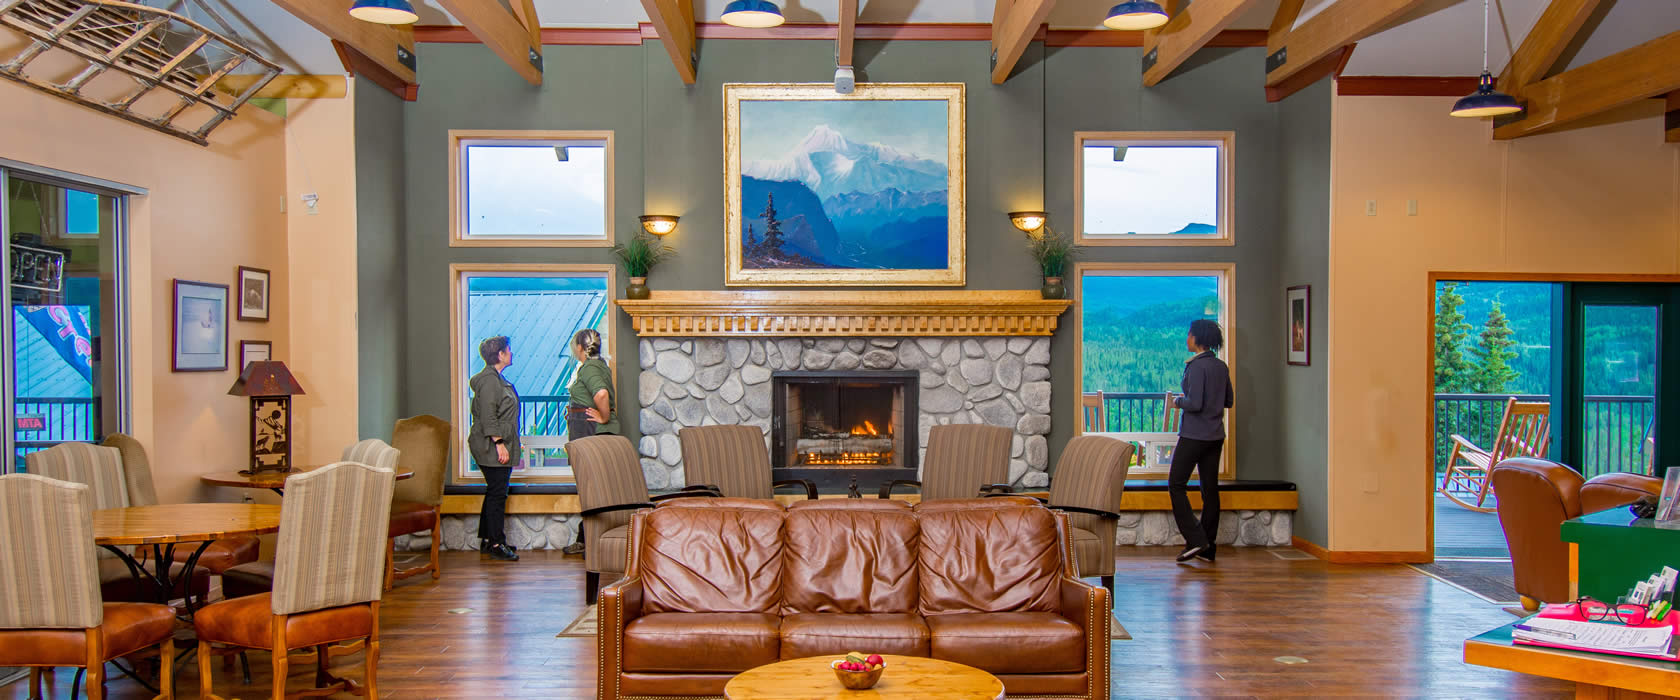 denali bluffs hotel in alaska